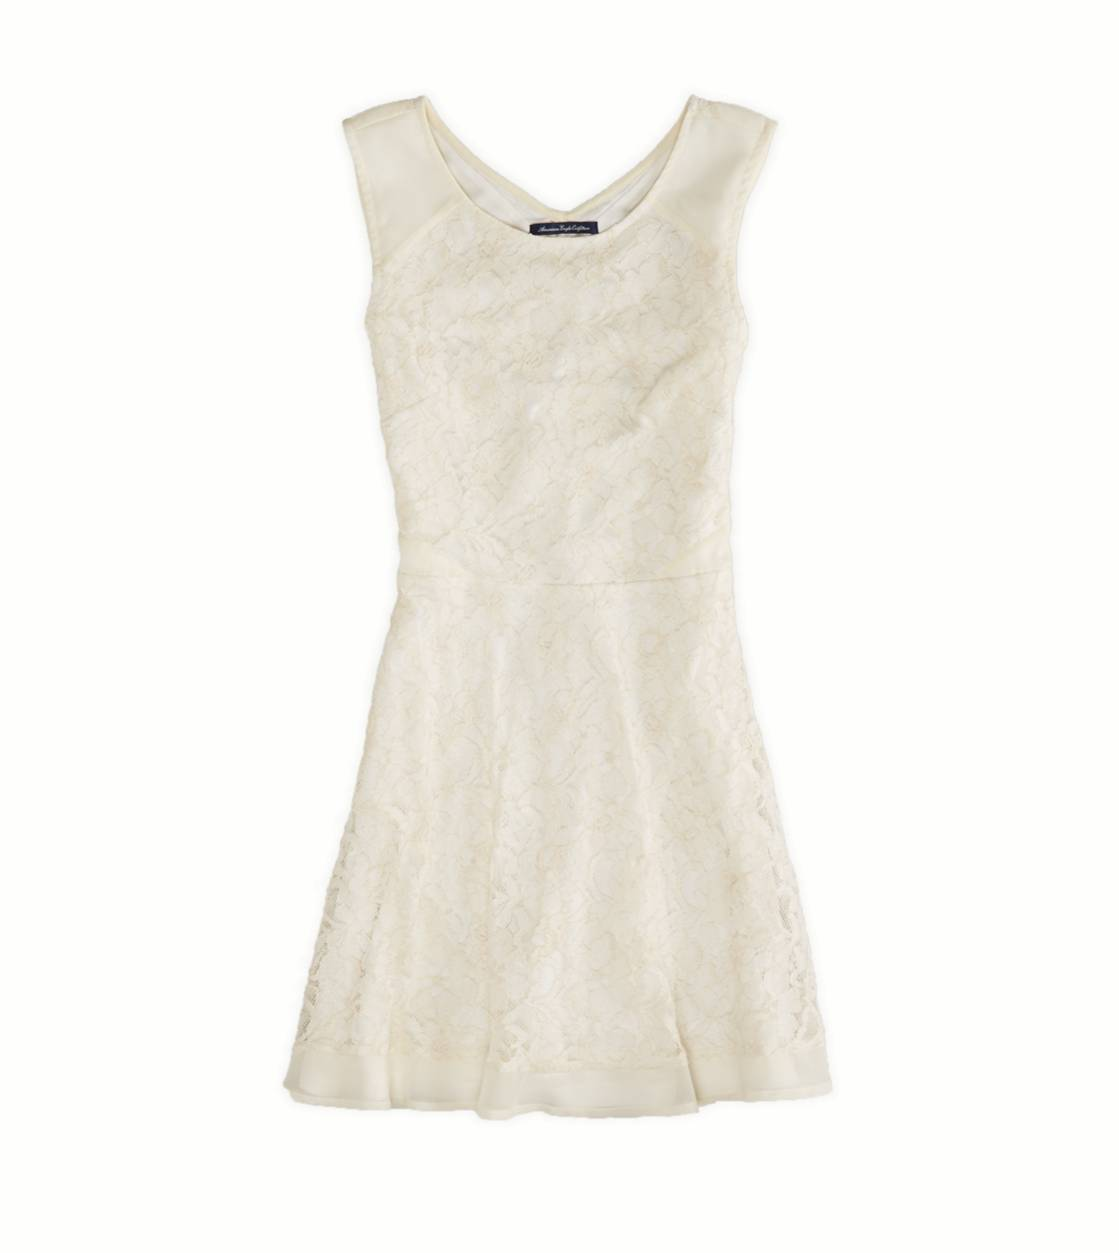 Cream AE Lace & Chiffon Party Dress